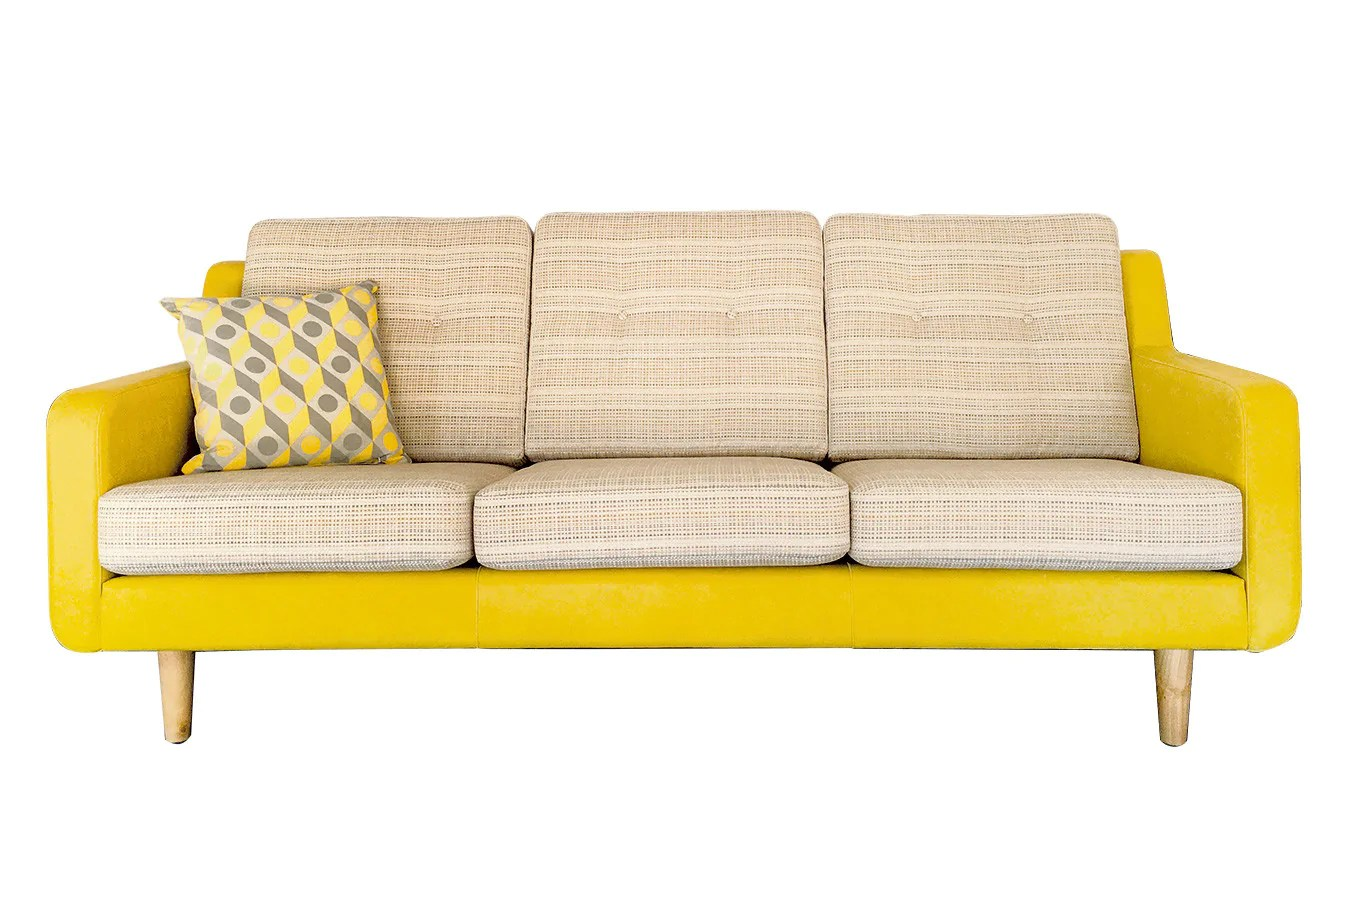 Retro Sofa Leather Xxl Sofa Retro